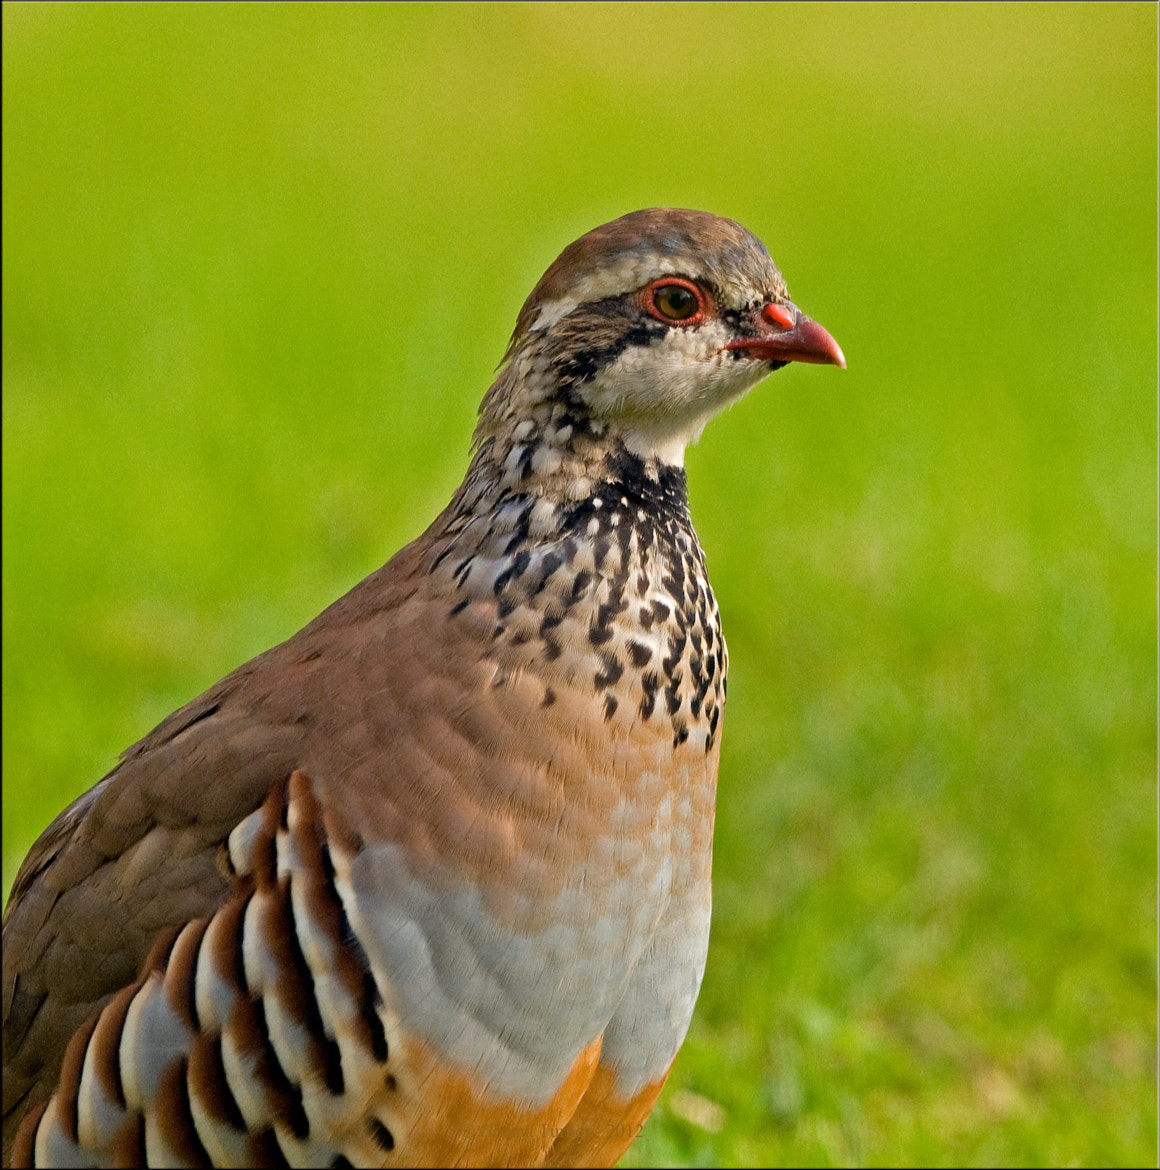 Photograph Portrait re-legged Partridge by Ina Turner on 500px